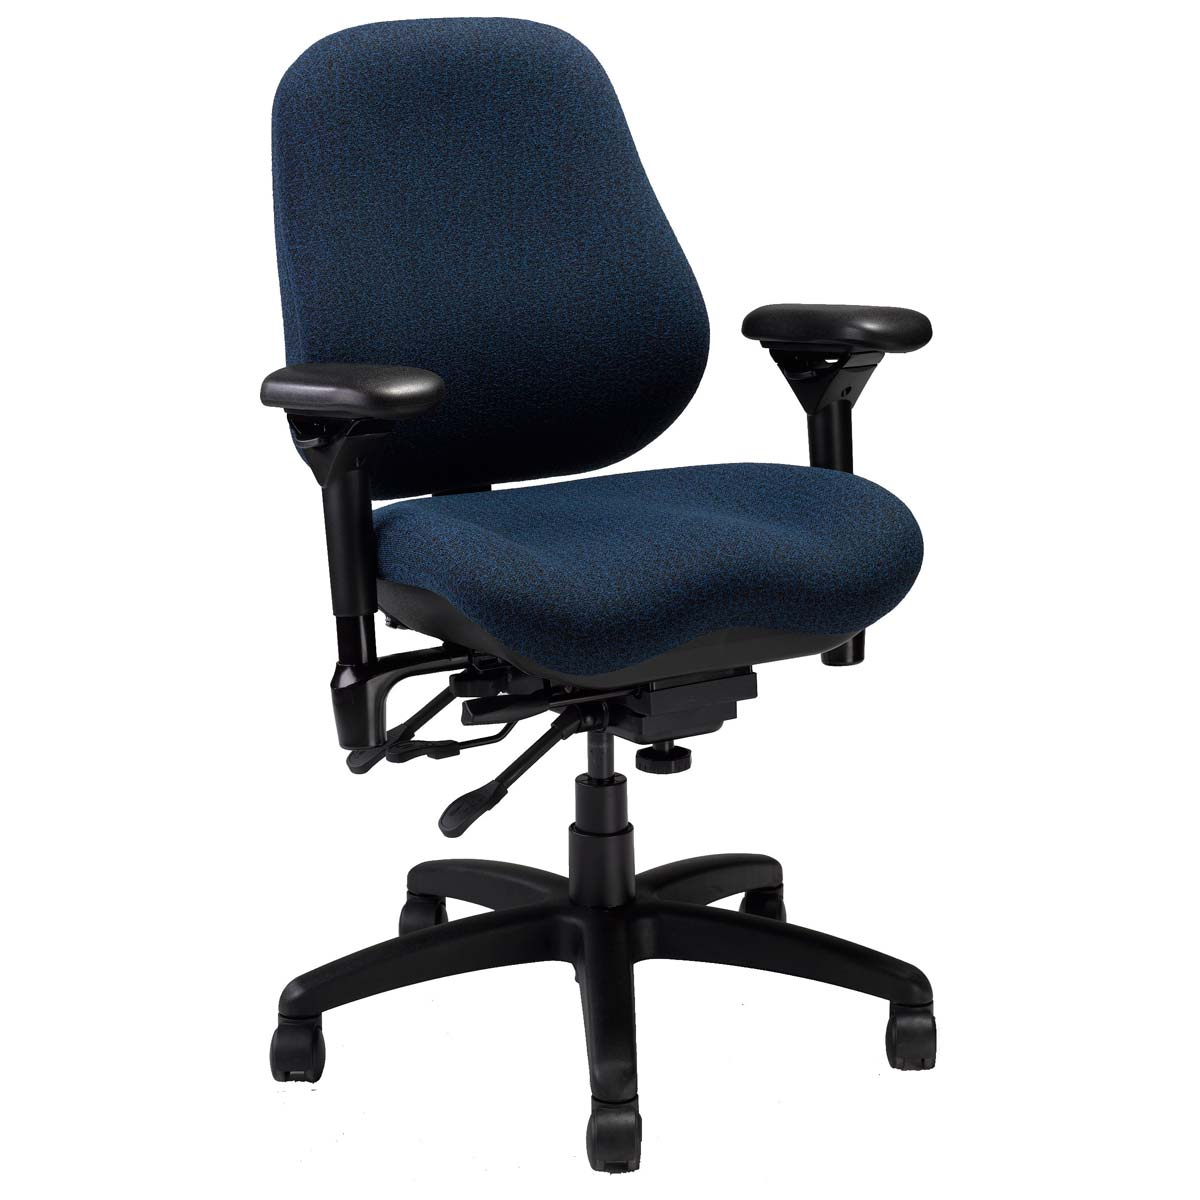 Petite Chairs Shop Bodybilt 2407 High Back Petite Executive Chairs